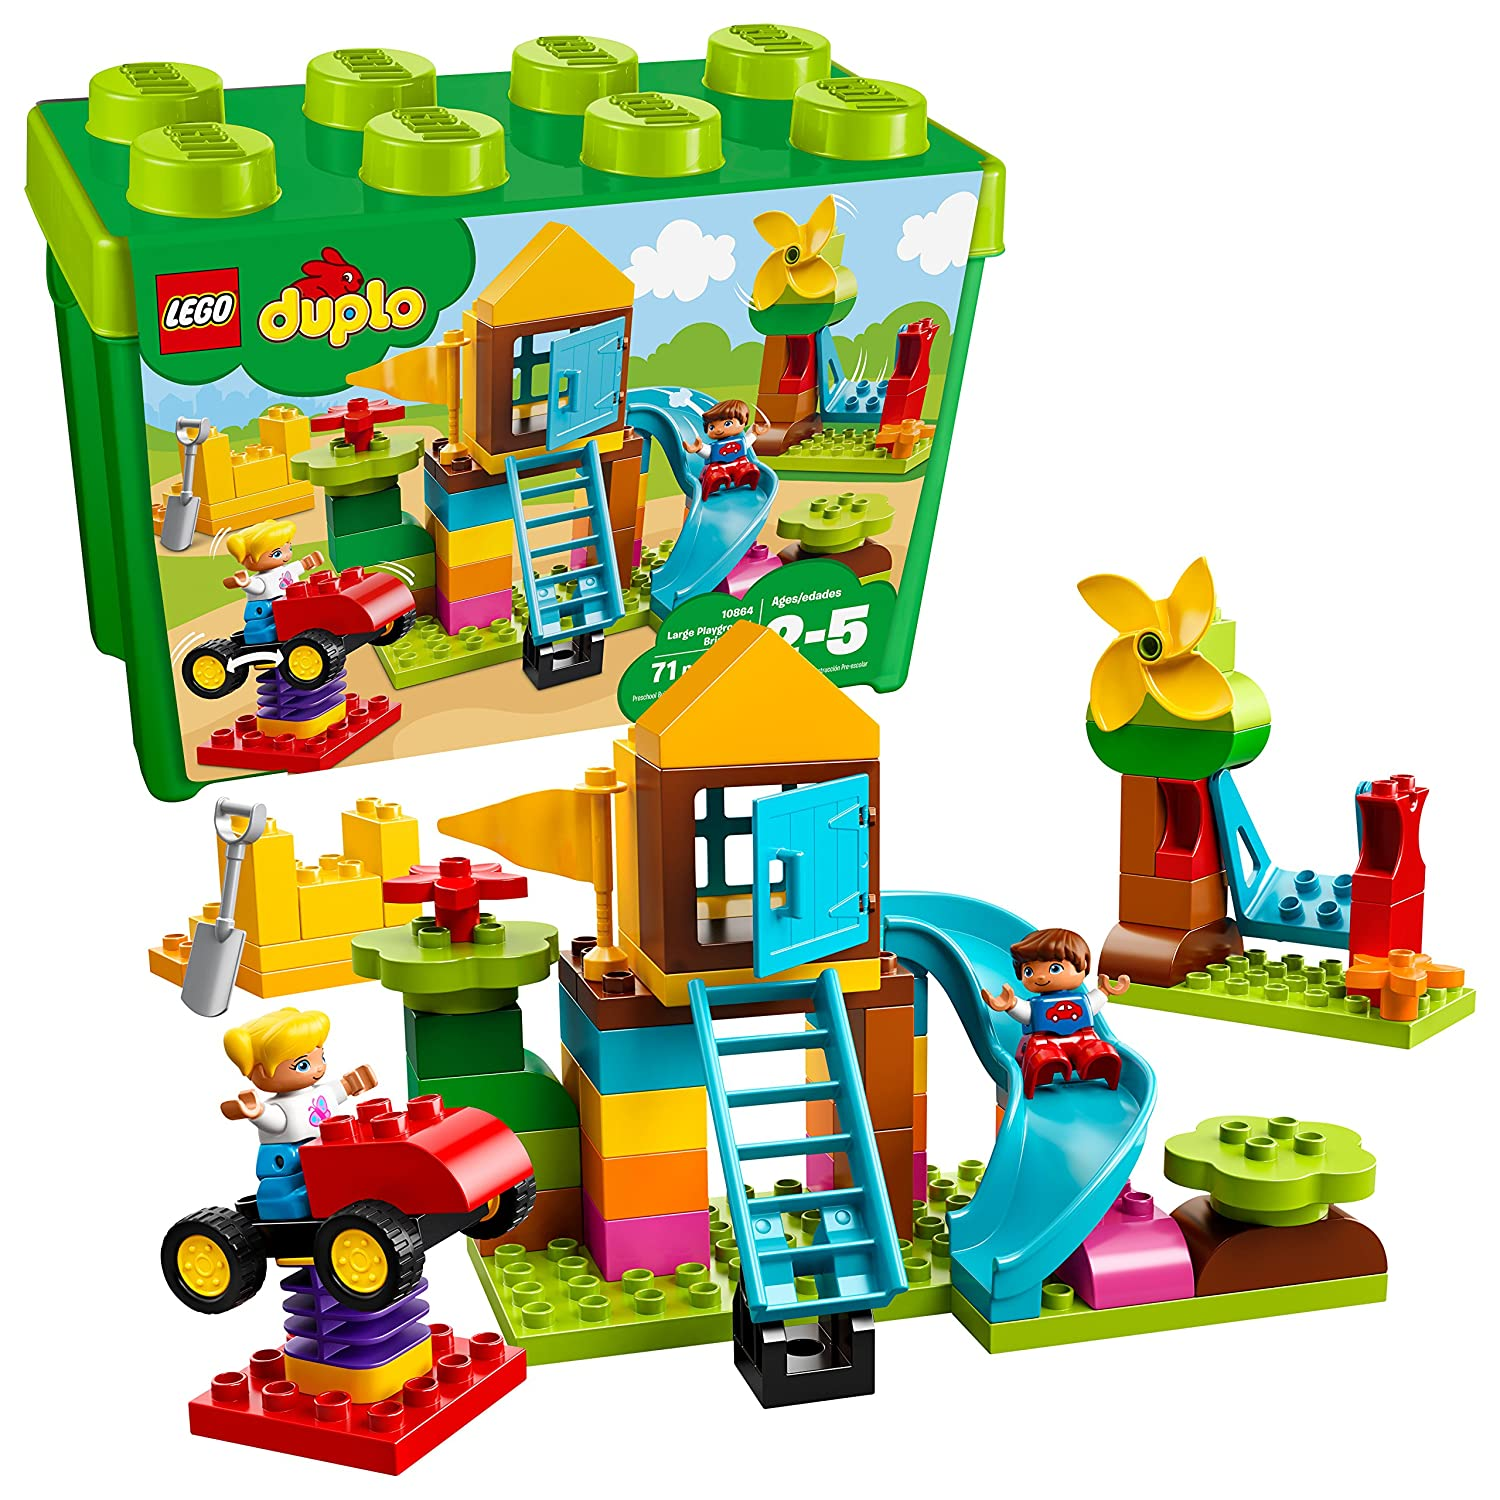 Lego Duplo Large Playground Brick Box 10864 Building Block (71 Piece) by Lego